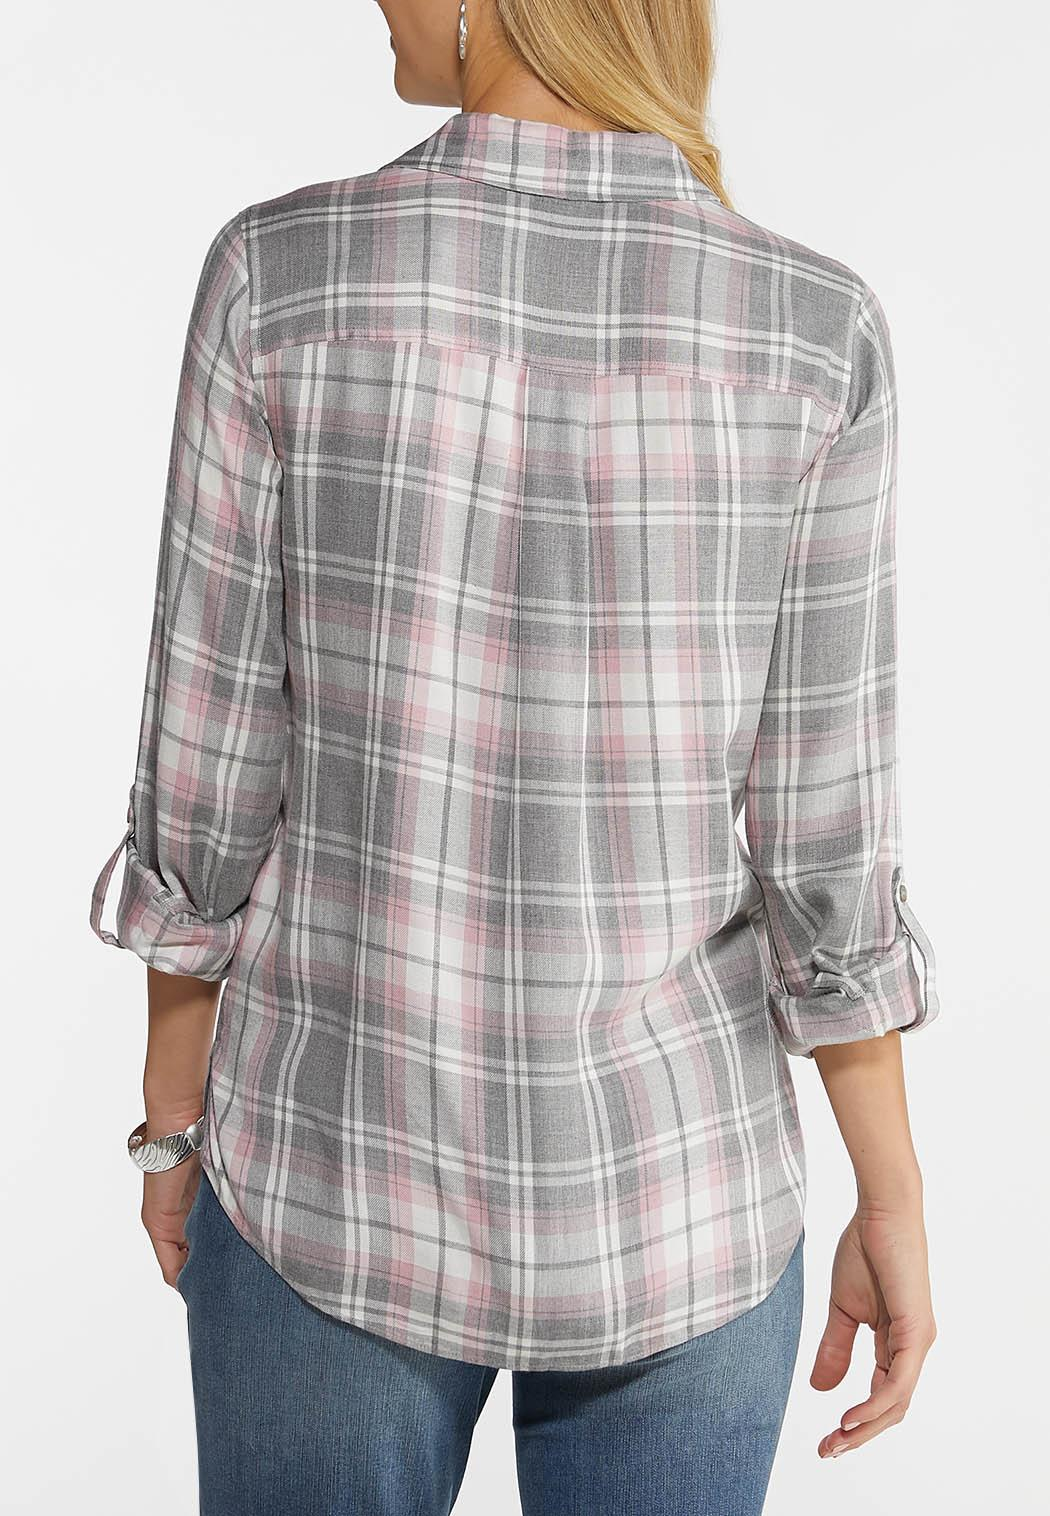 Blush Plaid Shirt (Item #44038107)